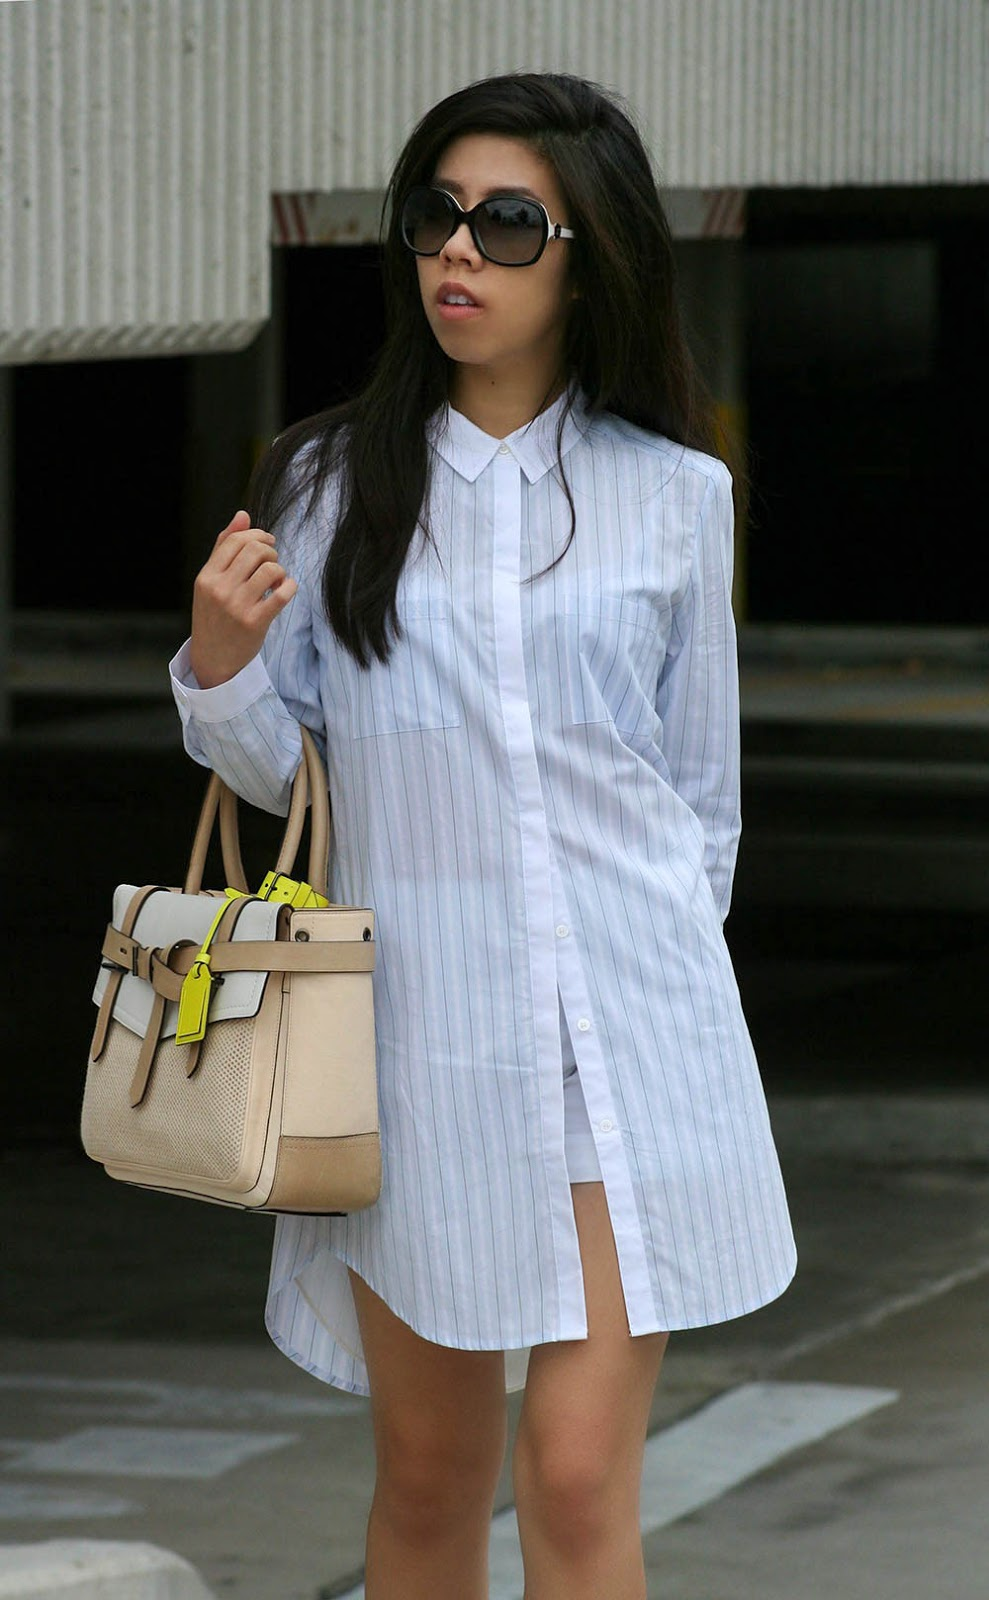 How to wear a shirt that is too long_Adrienne Nguyen_INvictus